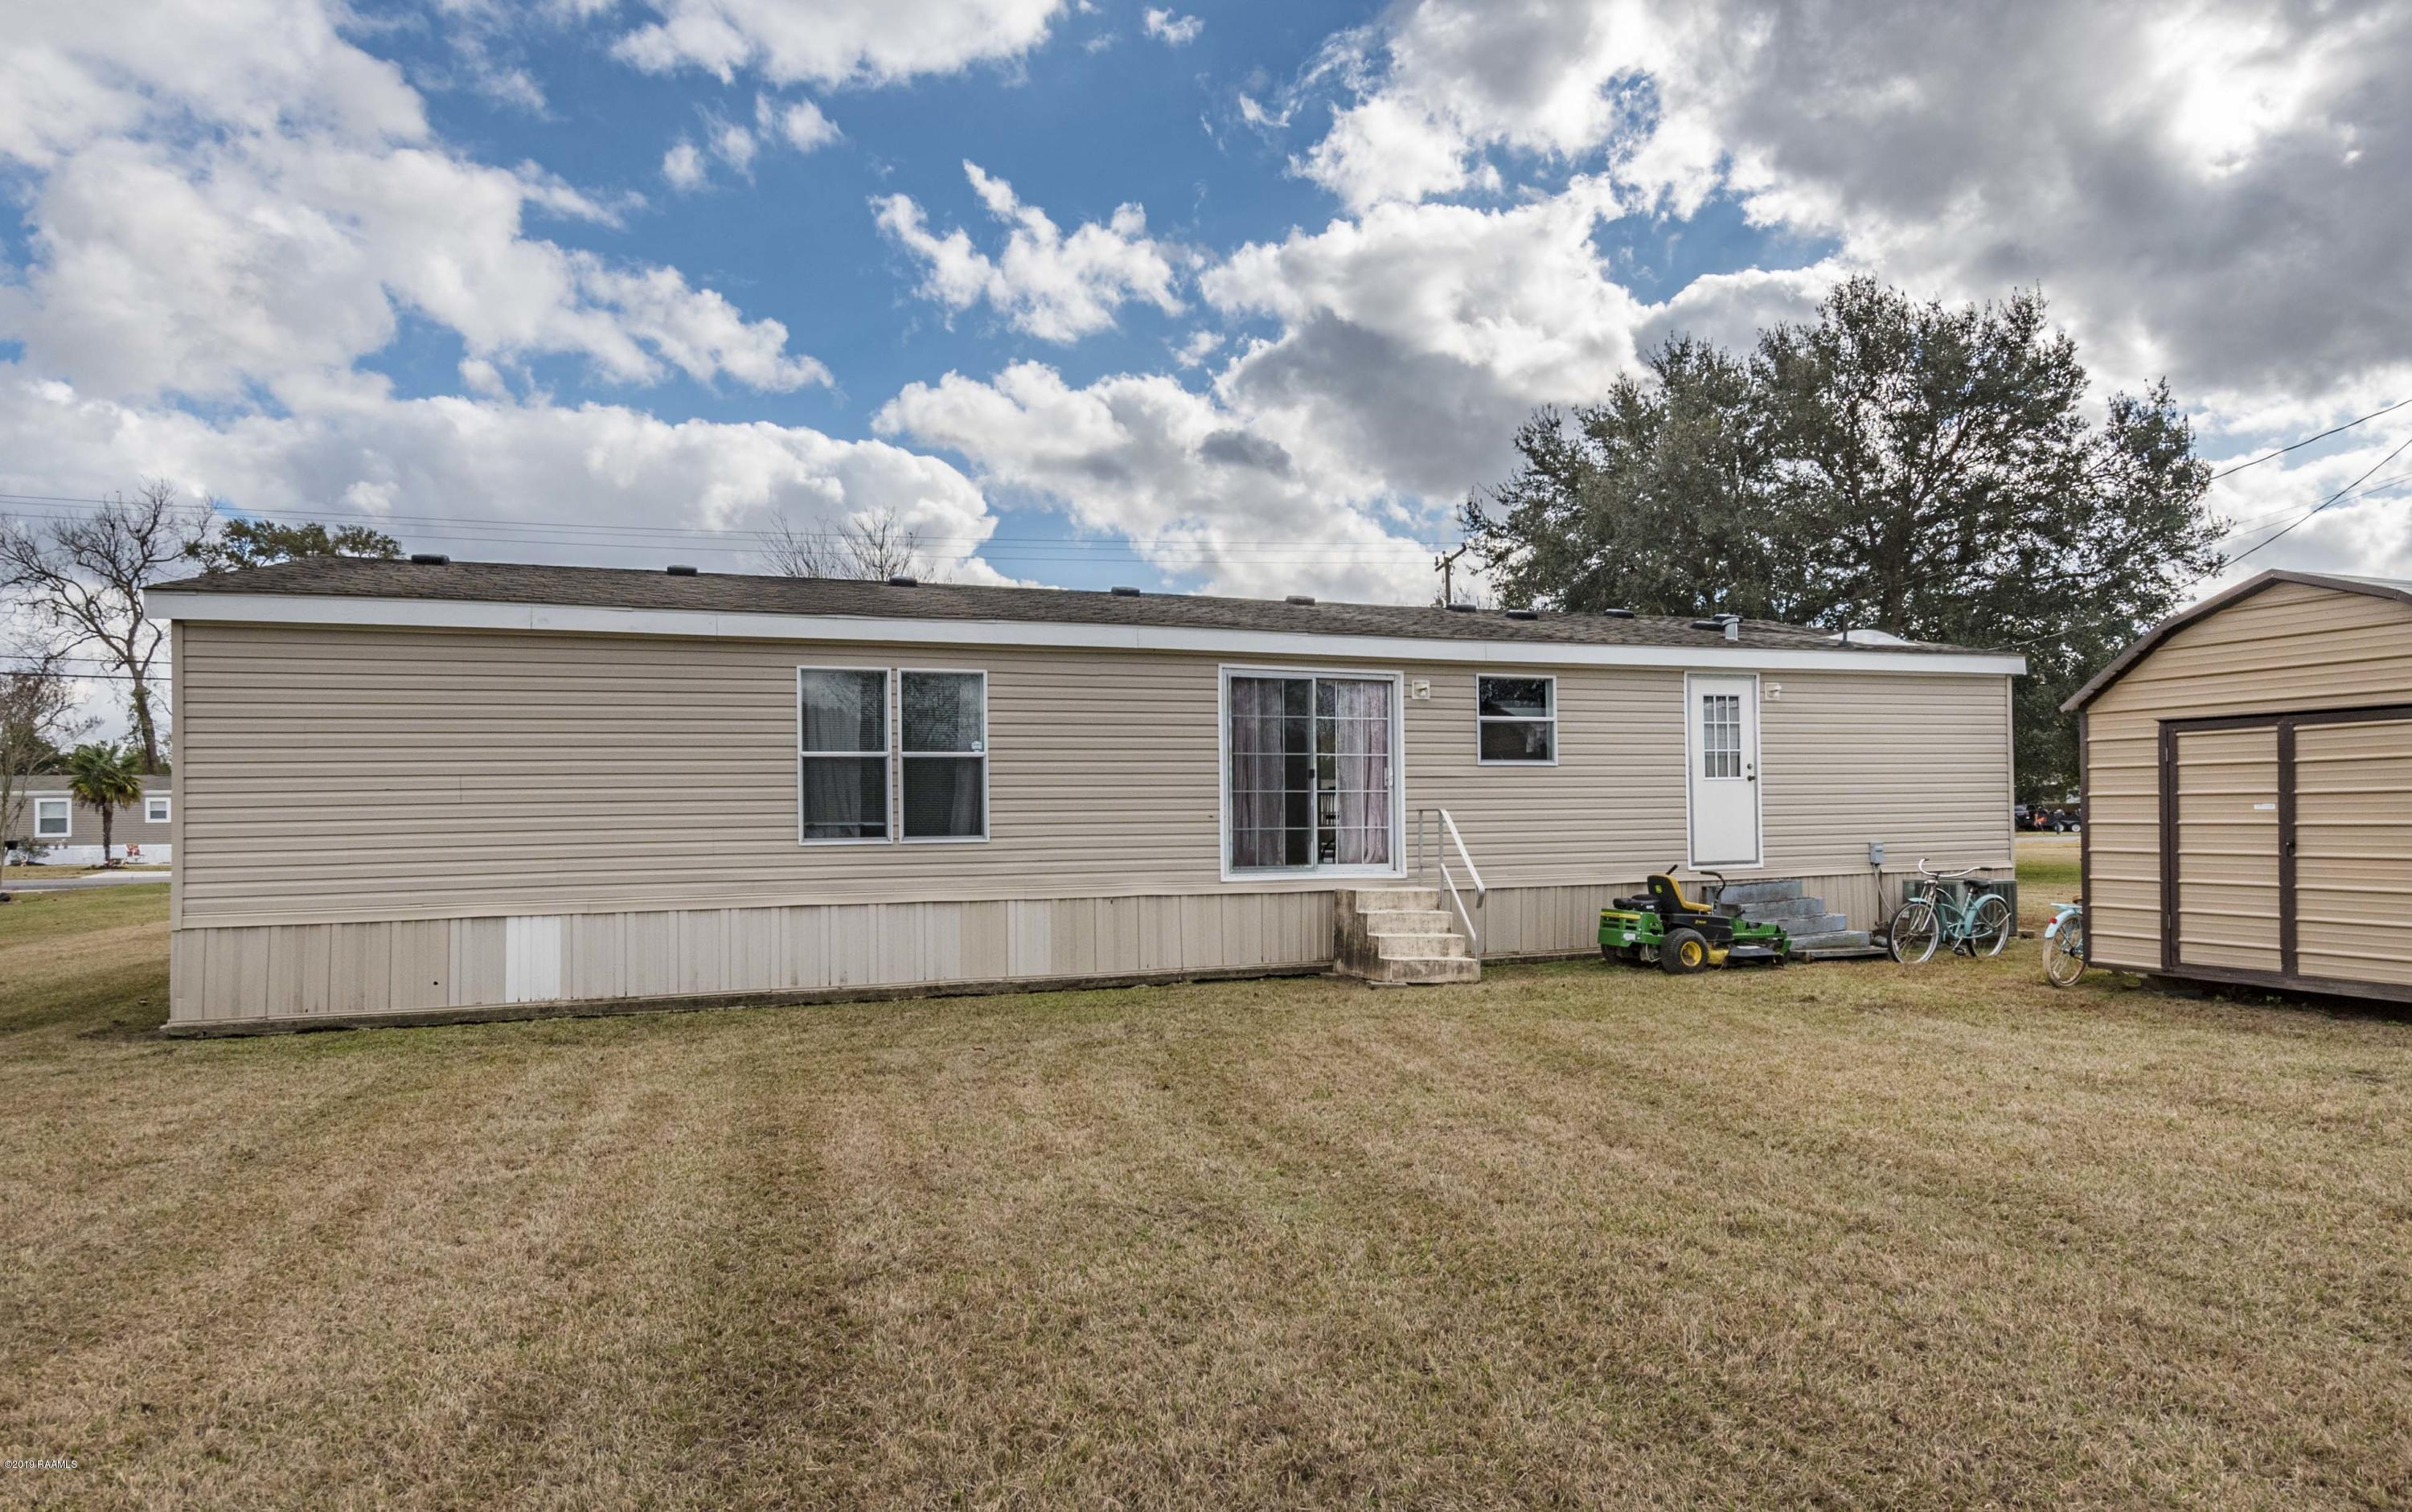 605 Parkway Drive, Breaux Bridge, LA 70517 Photo #30